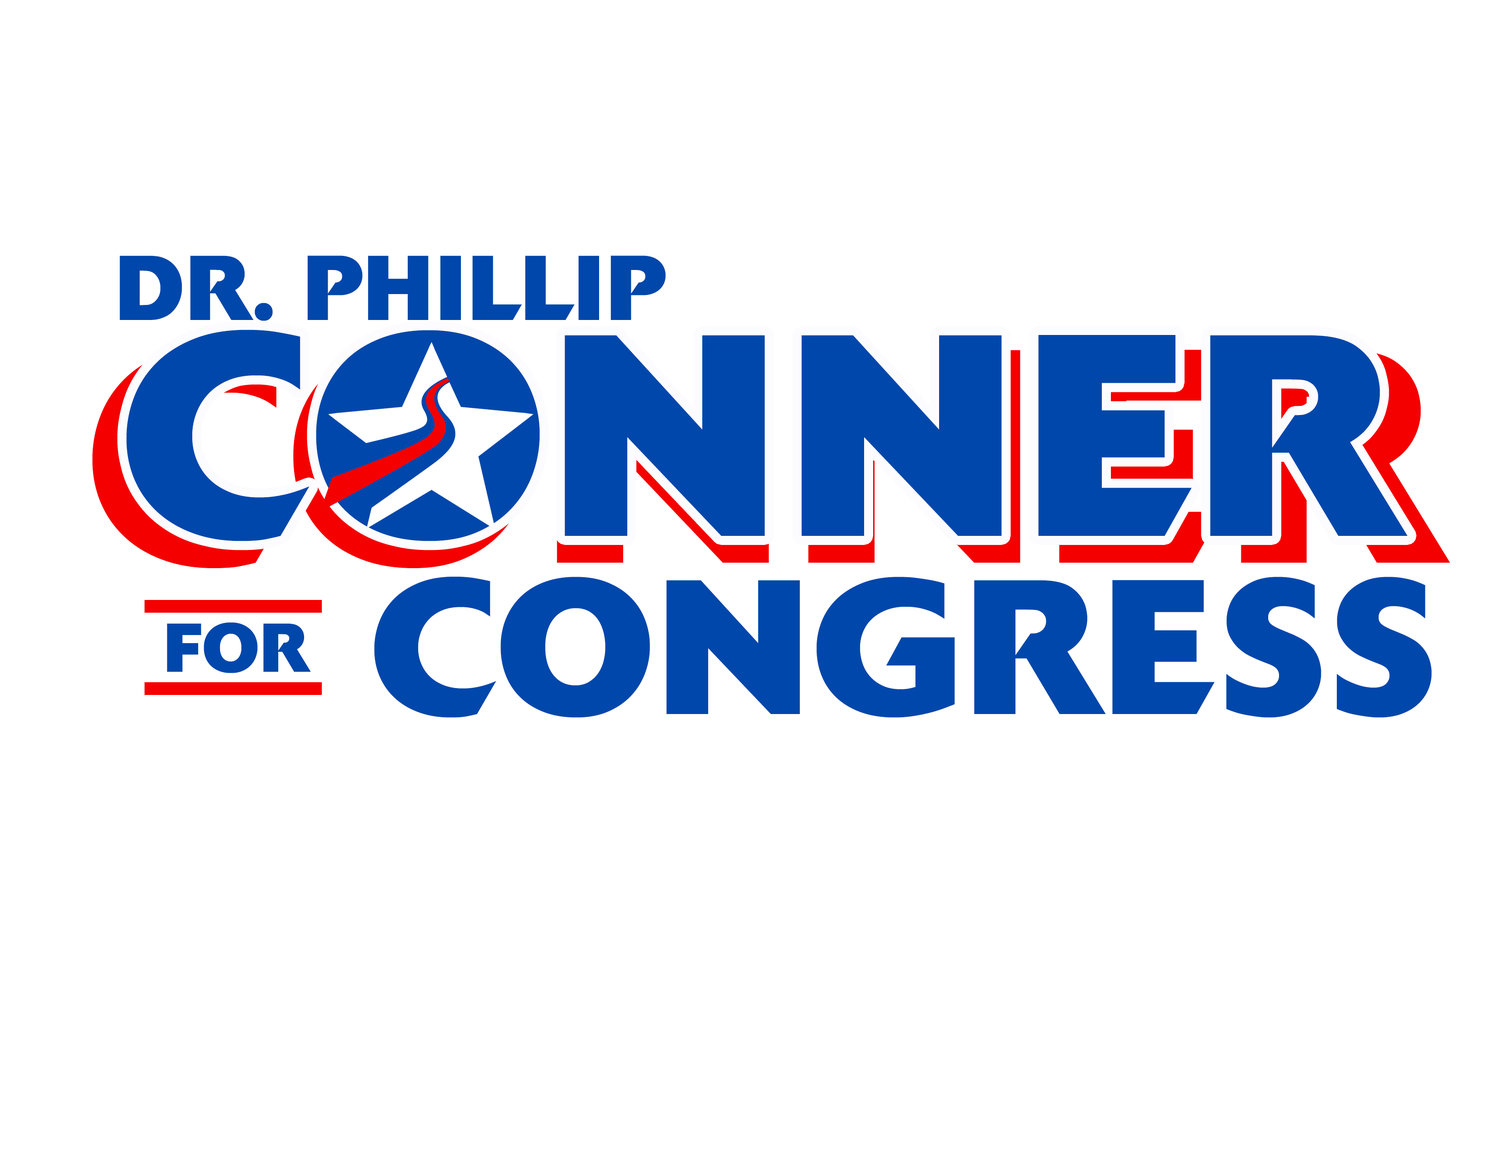 The Official Website for Dr. Phillip Conner For Congress